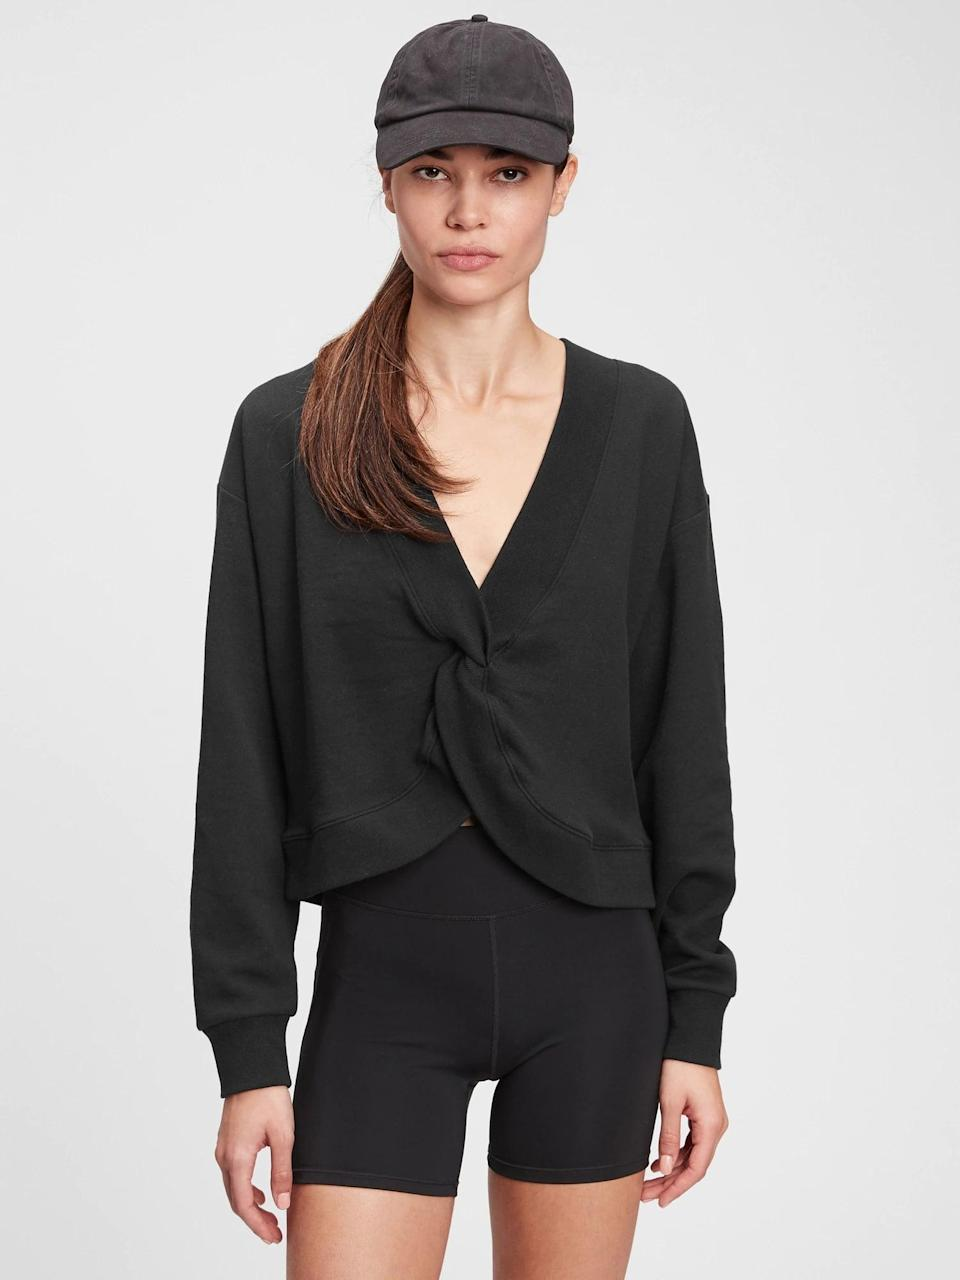 <p>This <span>Gap Reversible Twist Crewneck Sweatshirt</span> ($35, originally $55) can either be worn with this twist or with a classic crewneck silhouette in the front. We love the versatility.</p>